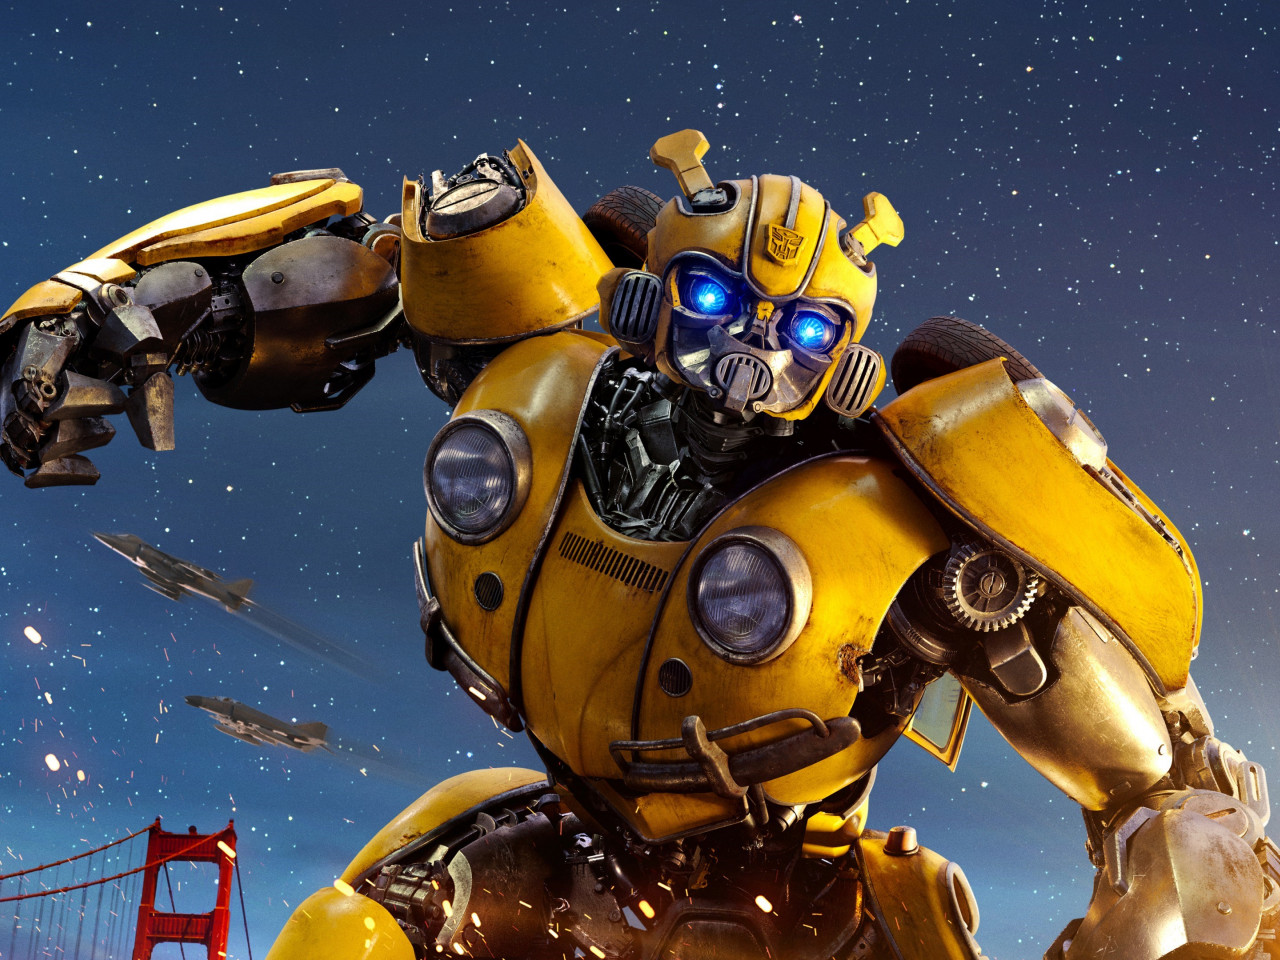 Bumblebee Transformers wallpaper 1280x960